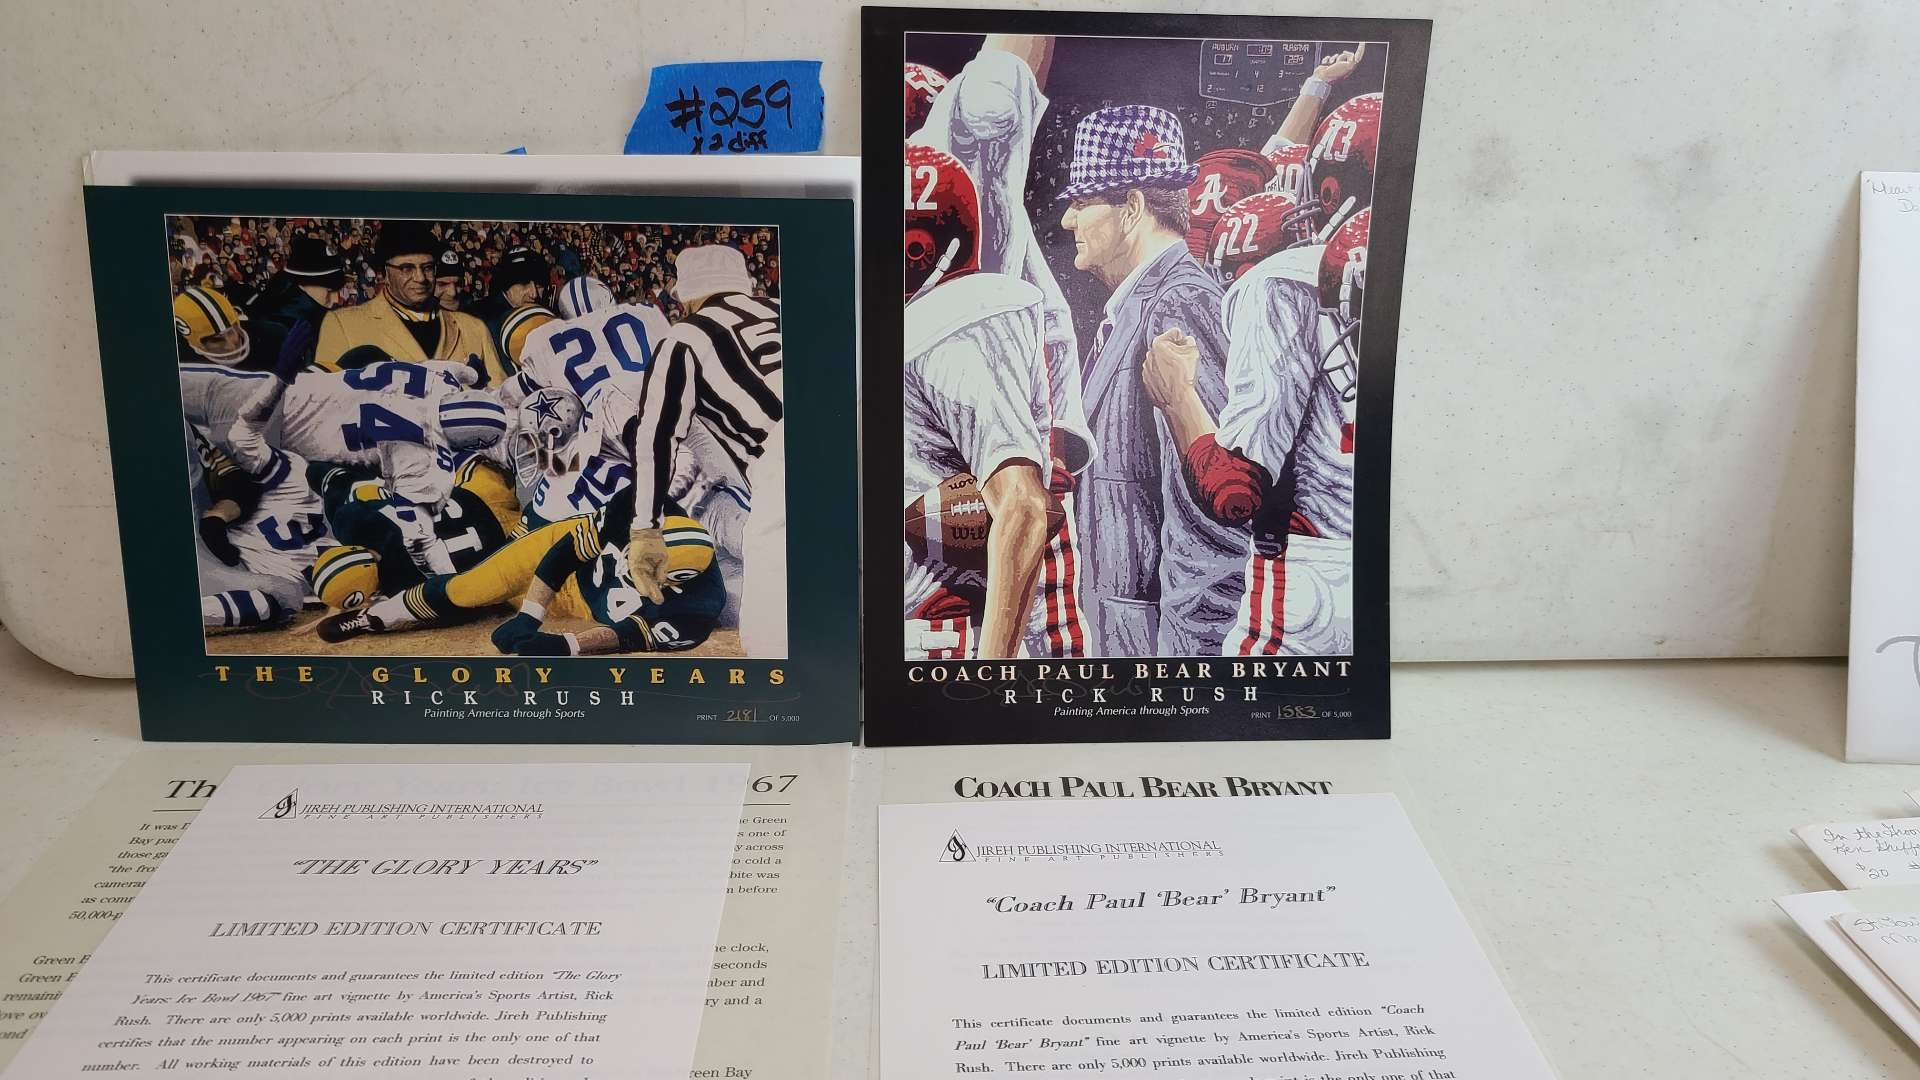 """Lot # 259 """"Coach Paul """"Bear"""" Bryant"""" and """"The Glory Years"""" By Rick Rush Limited Edition Signed & Numbered Print"""